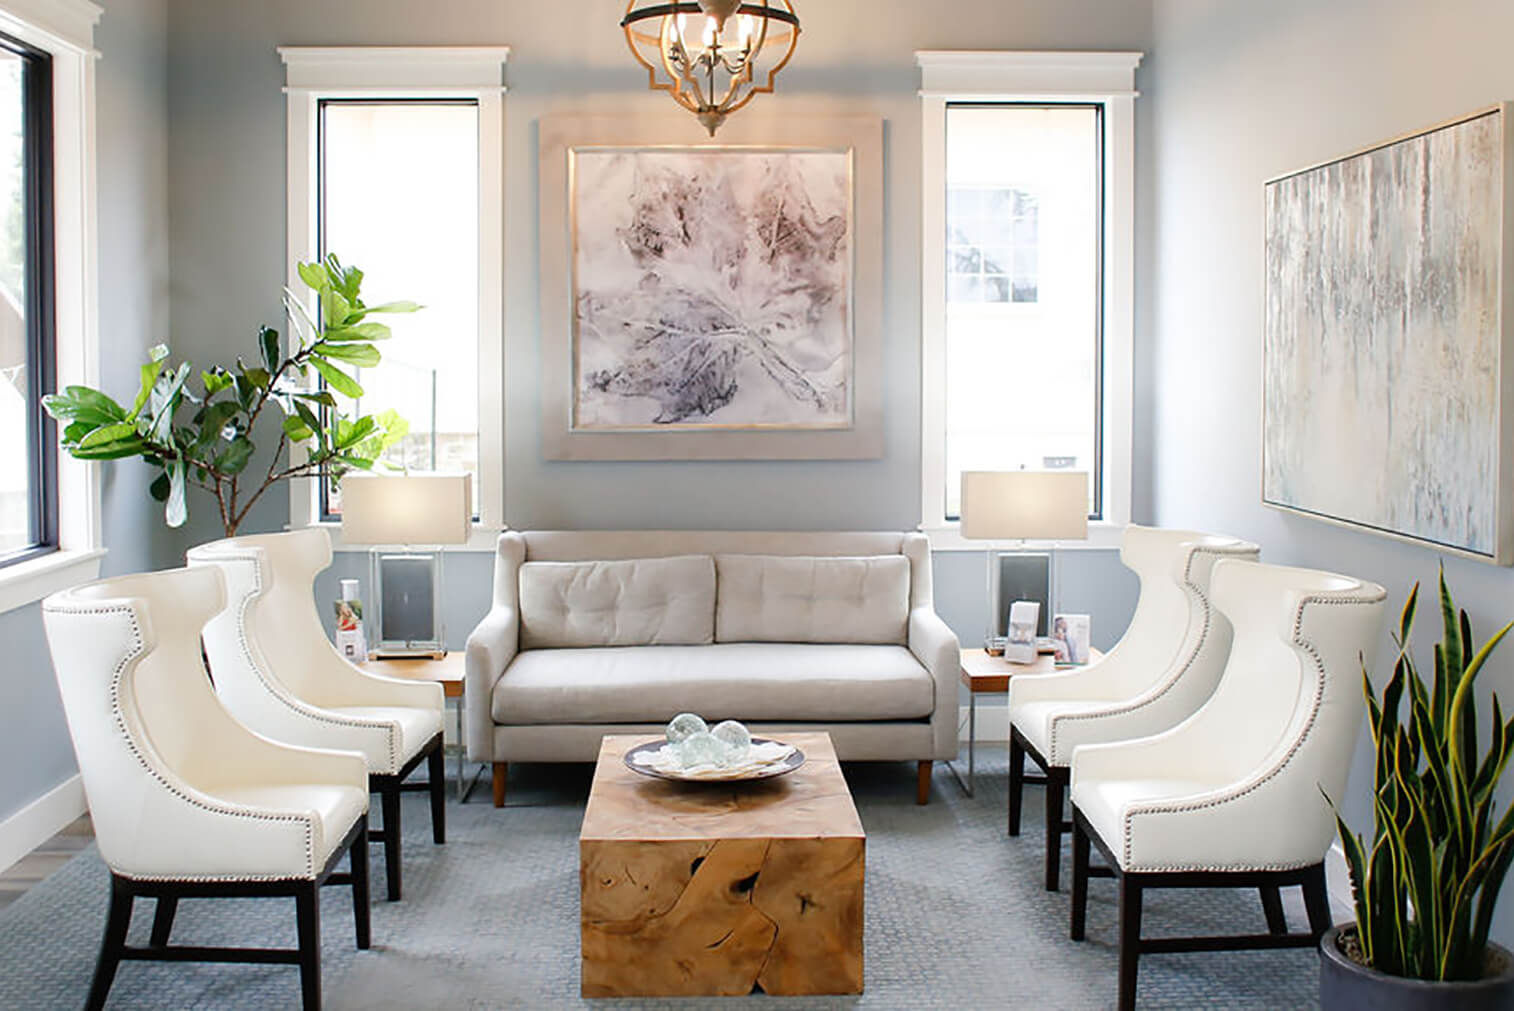 Emerge Midtown front entrance with chairs, loveseat, and table